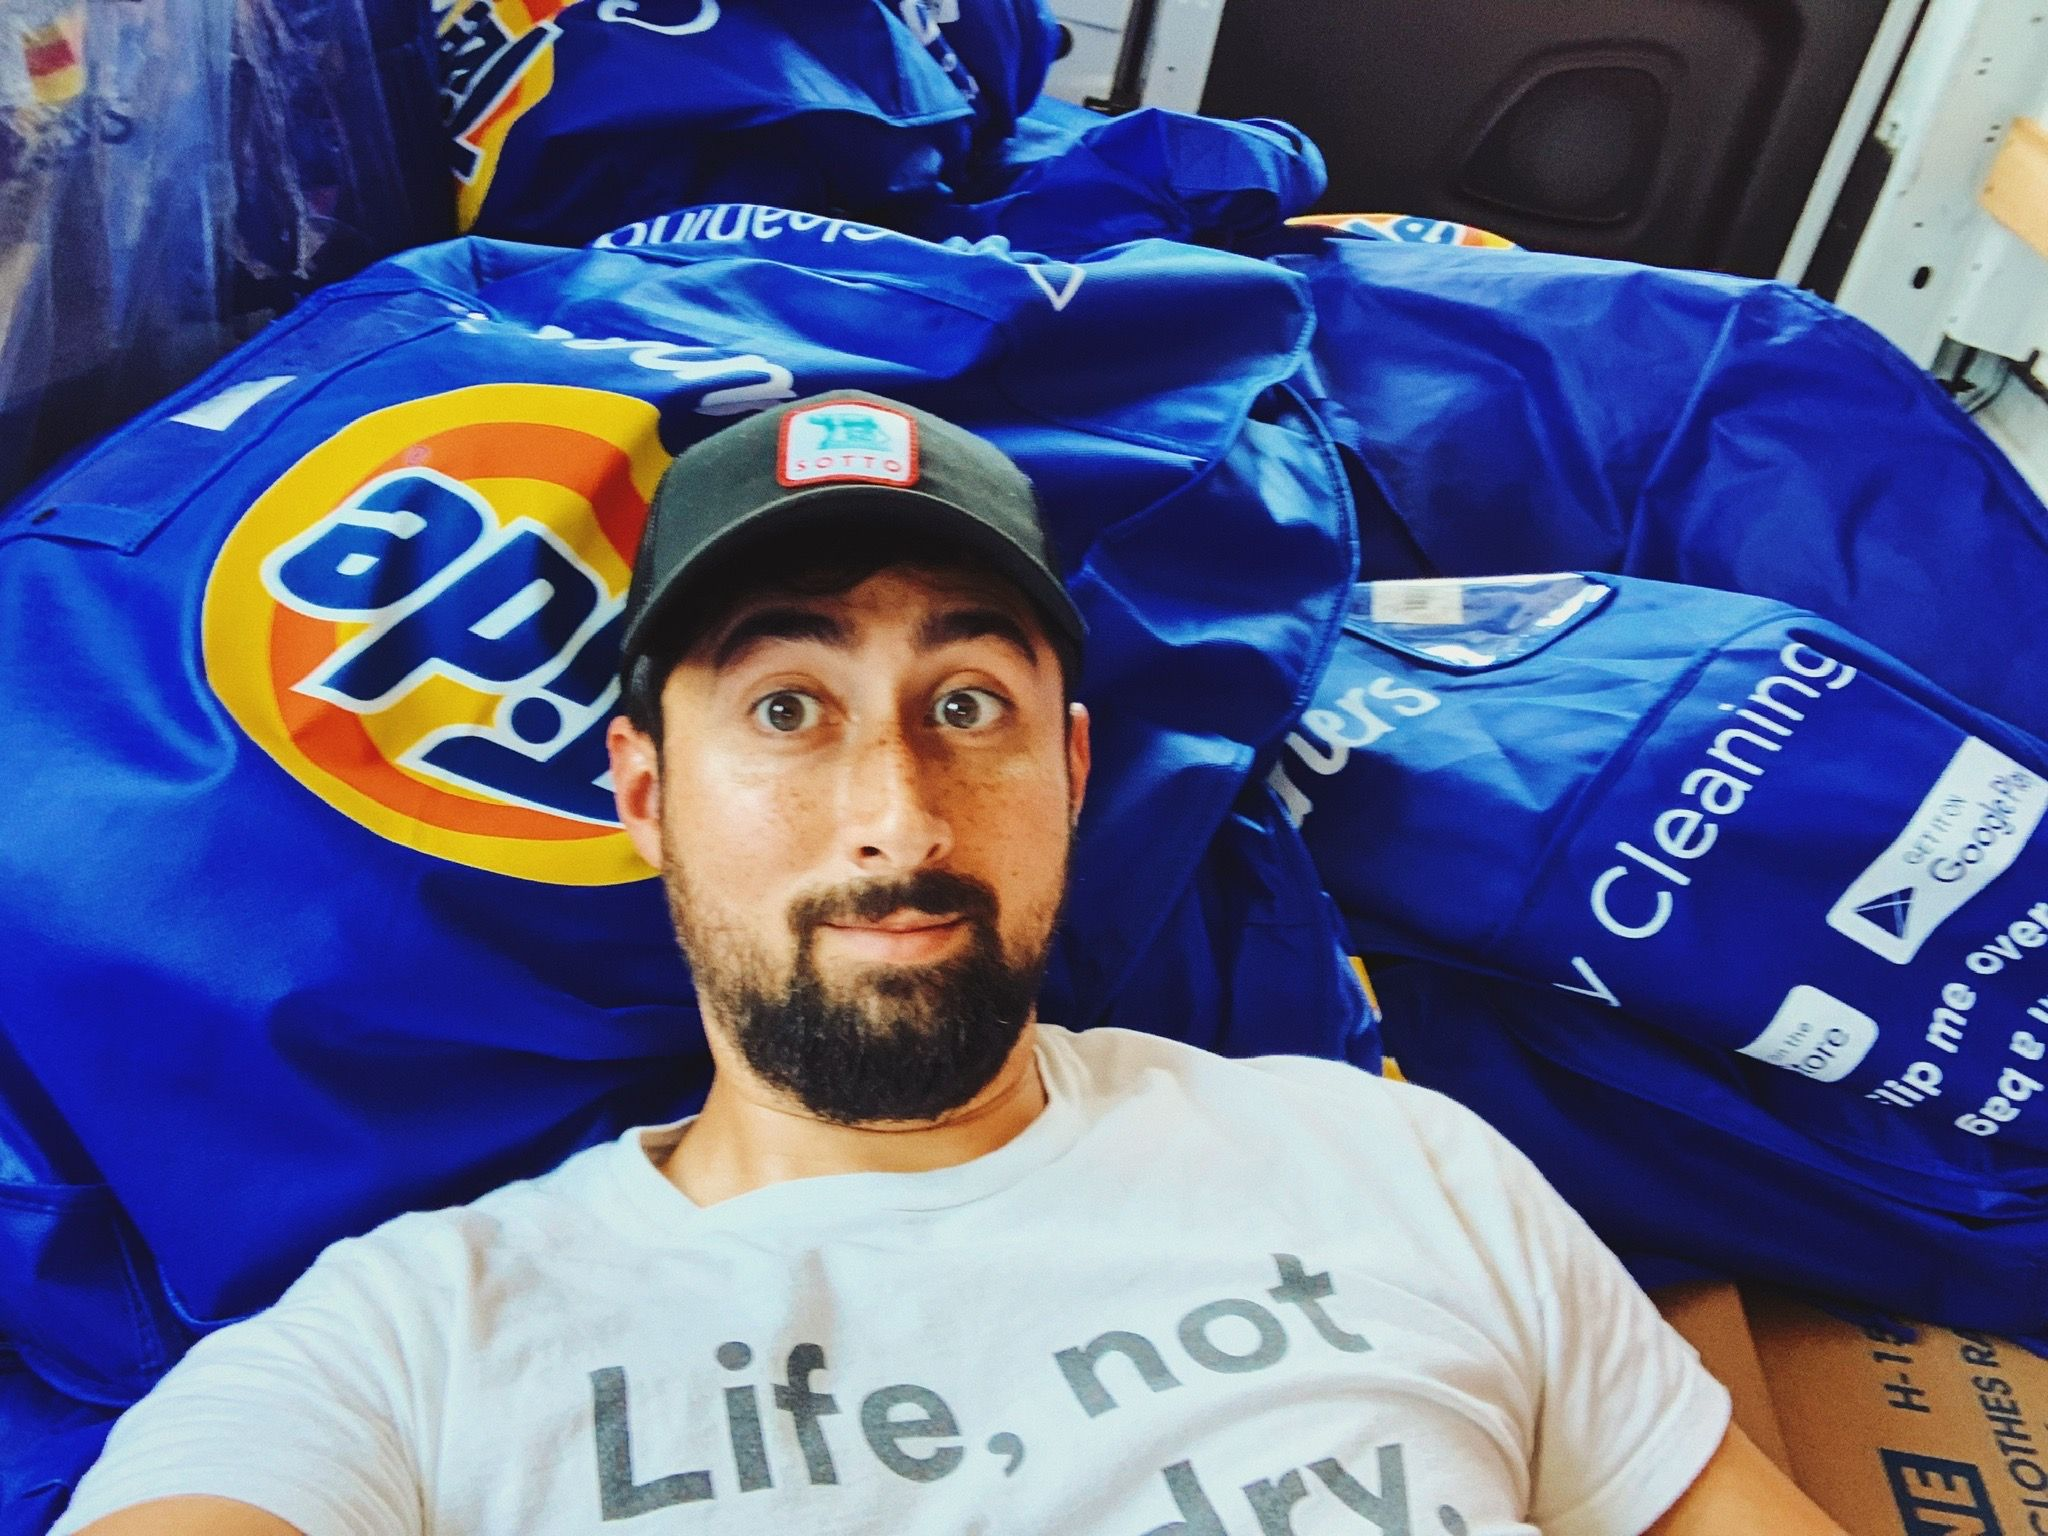 Slinging laundry with Tide Cleaners drivers to validate our driver application before launching.